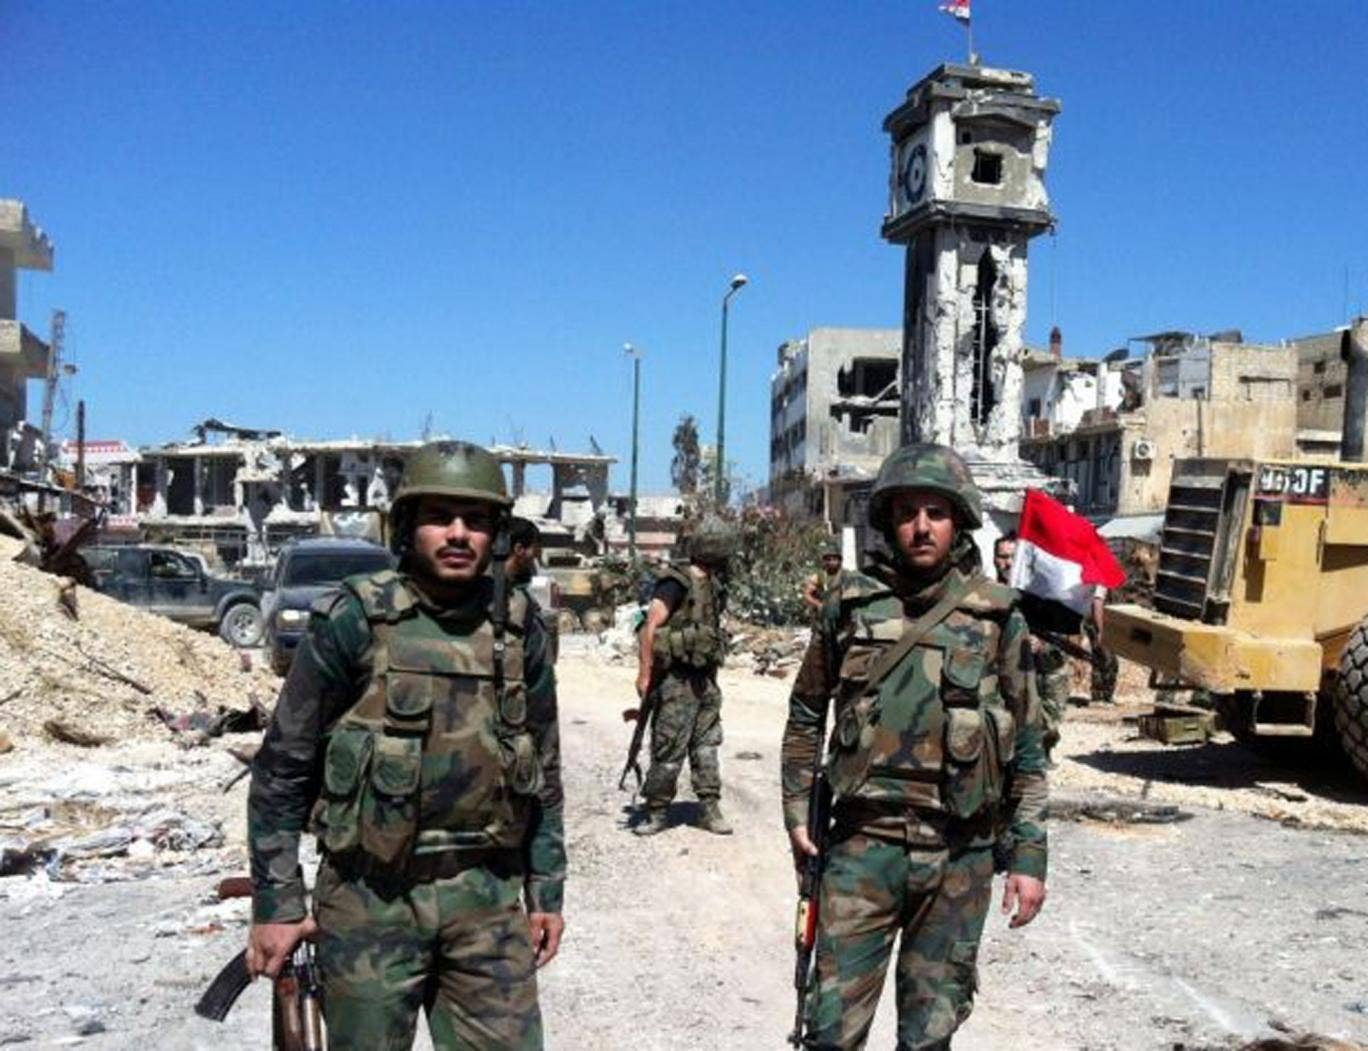 Syrian government soldiers in the main square of the city of Qusayr, near the Lebanese border